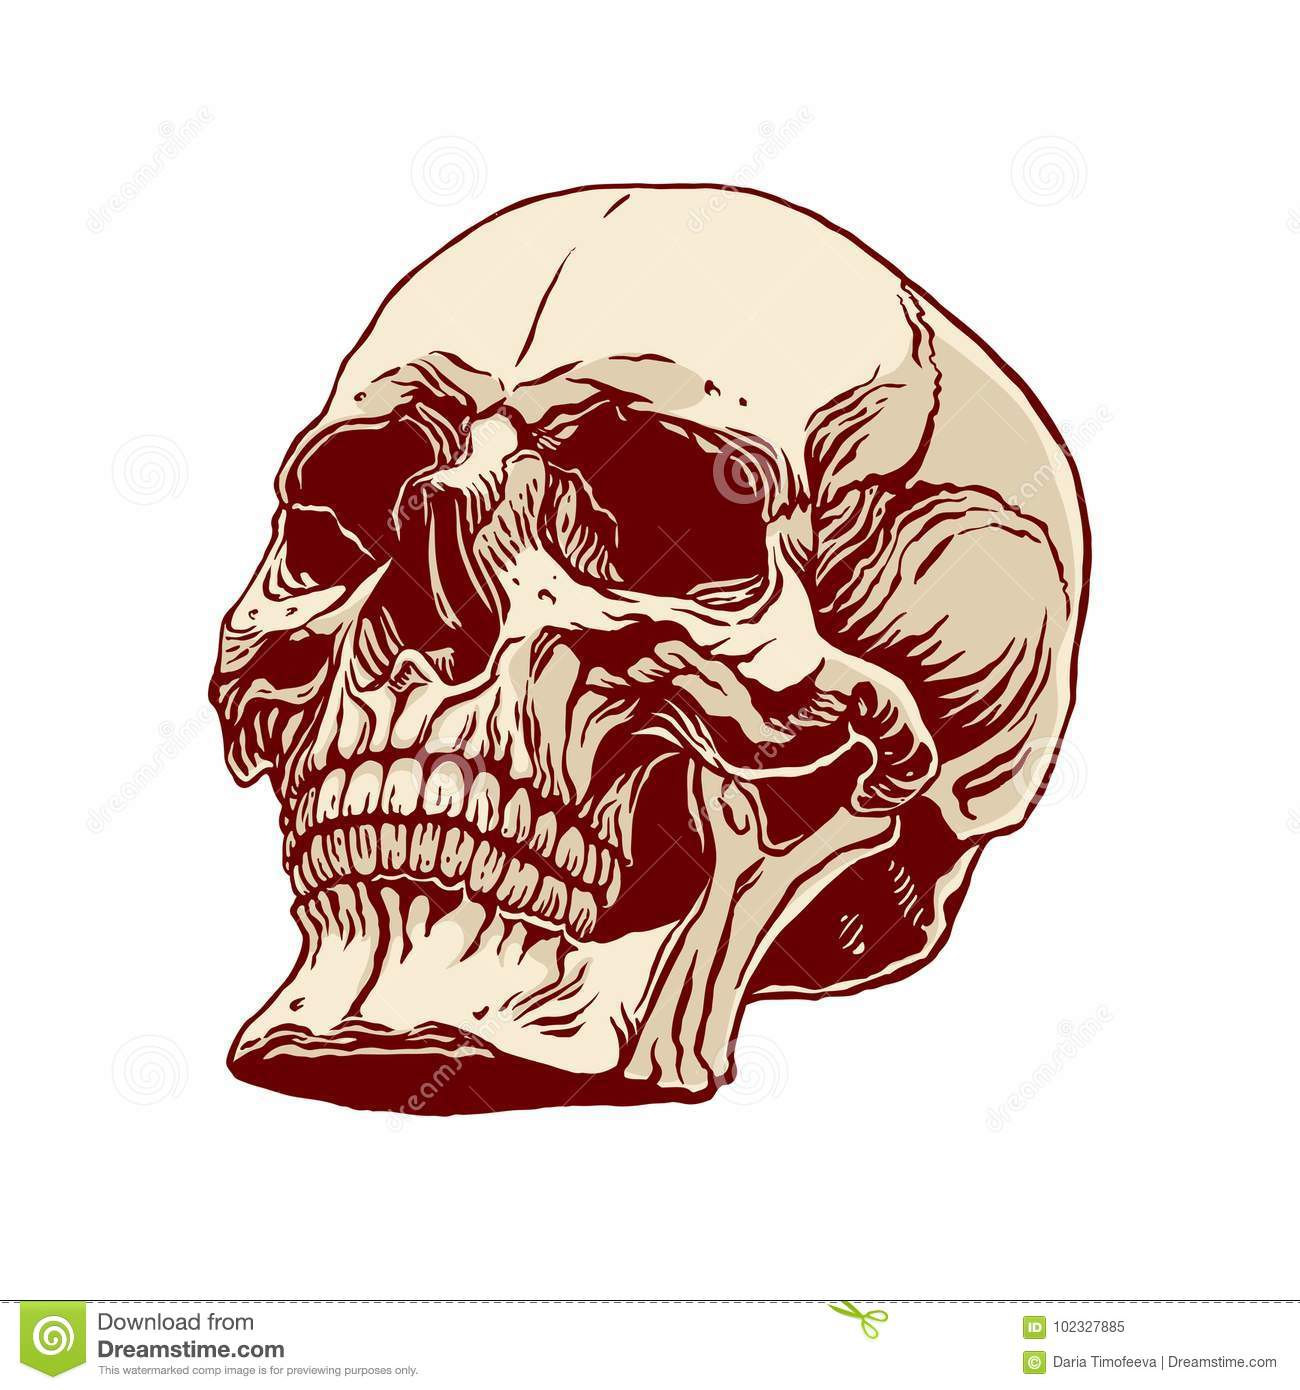 Hand drawn human skull stock vector. Illustration of brown - 102327885